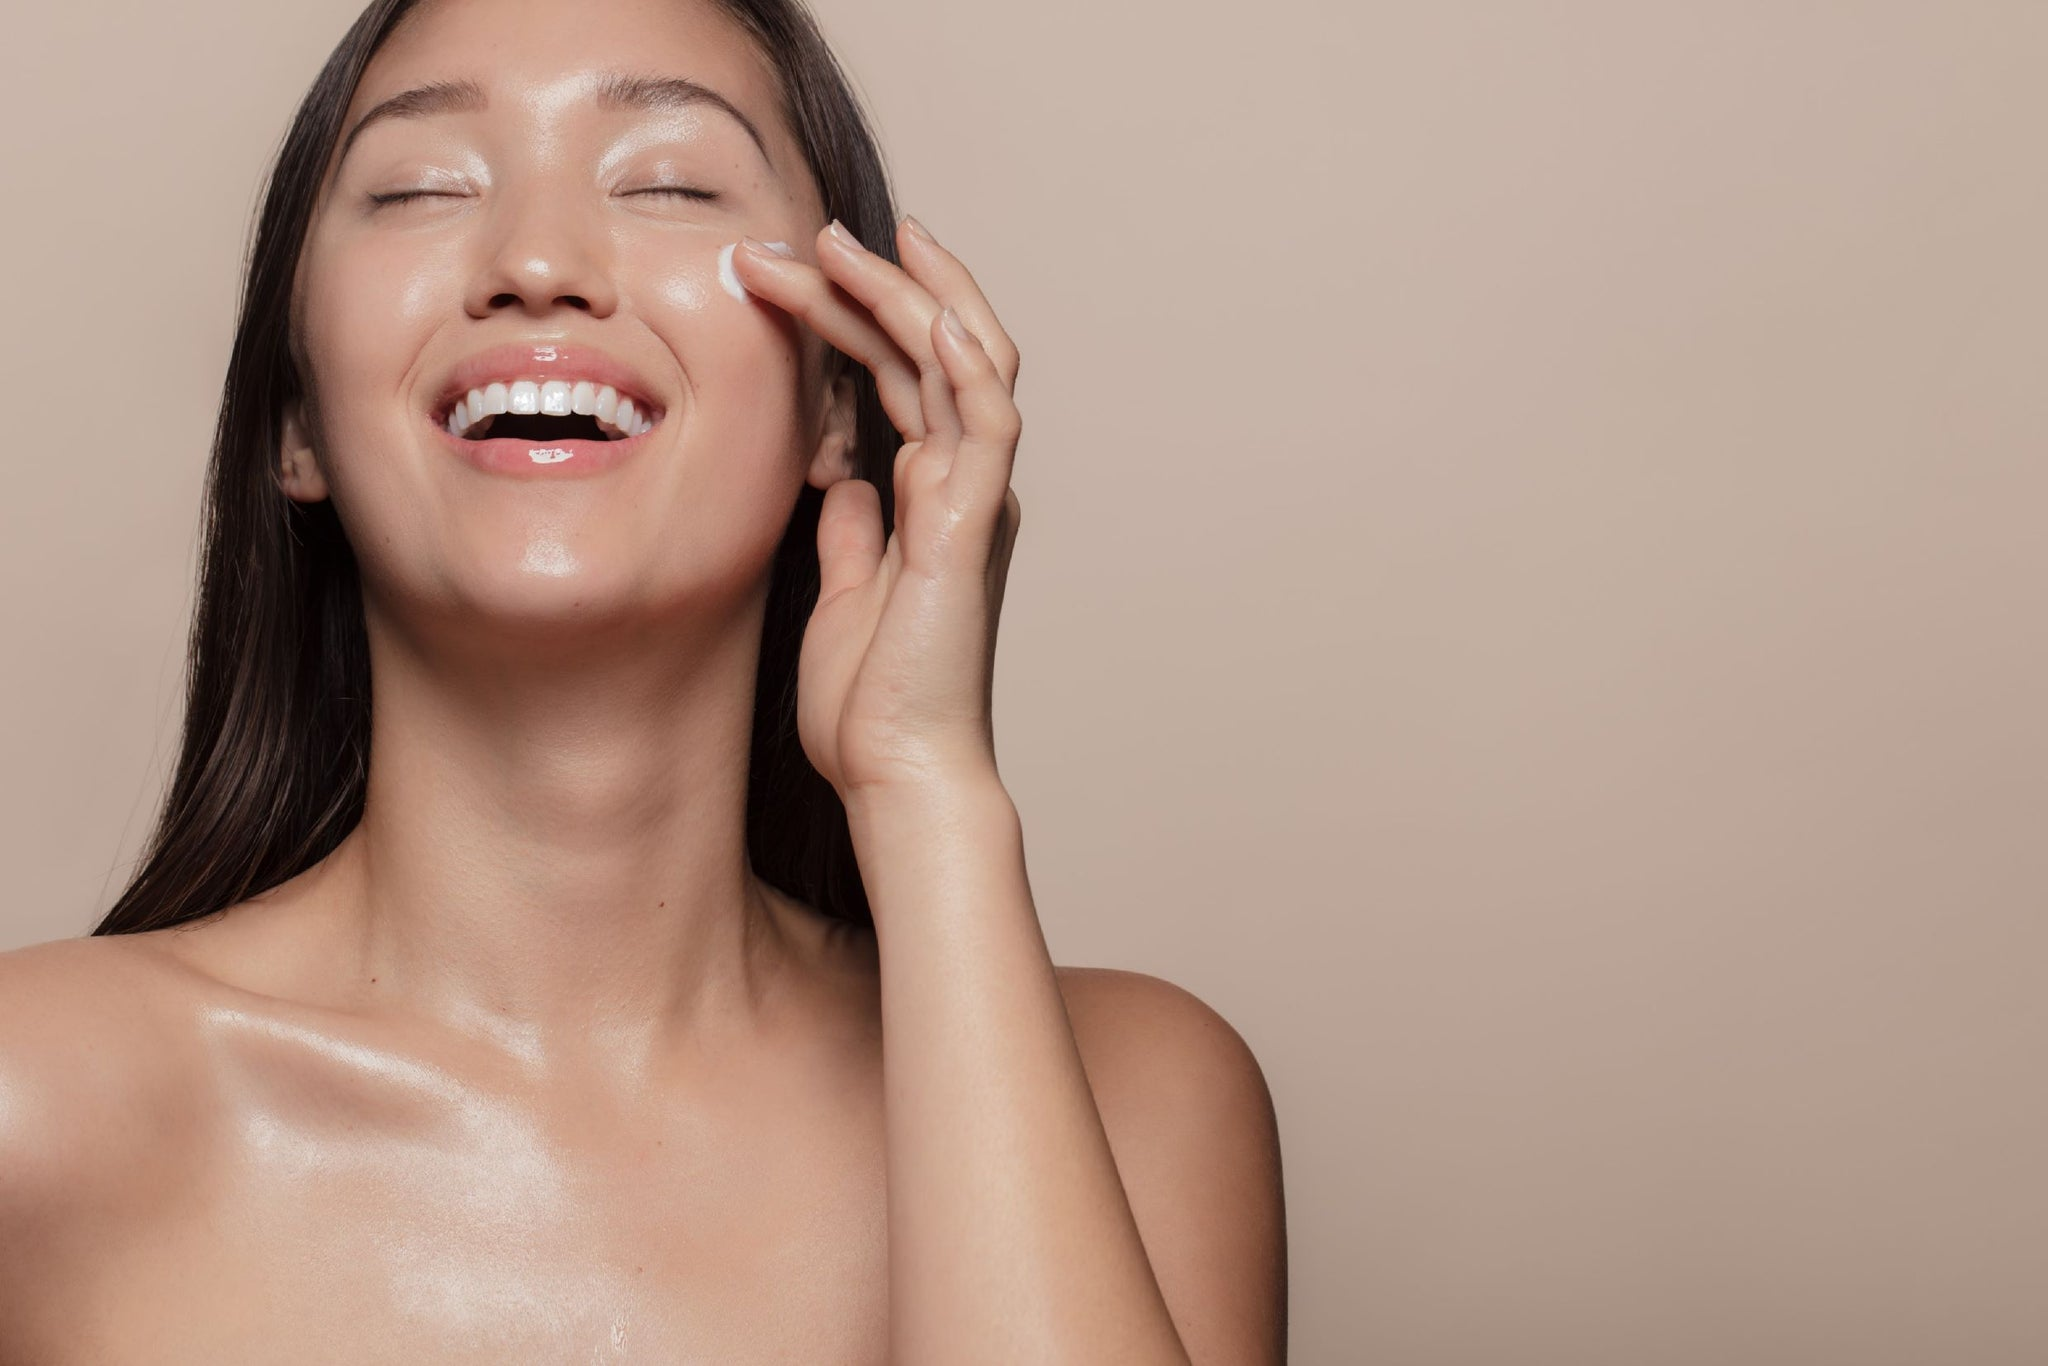 How to get glowy skin naturally | Skin care routine